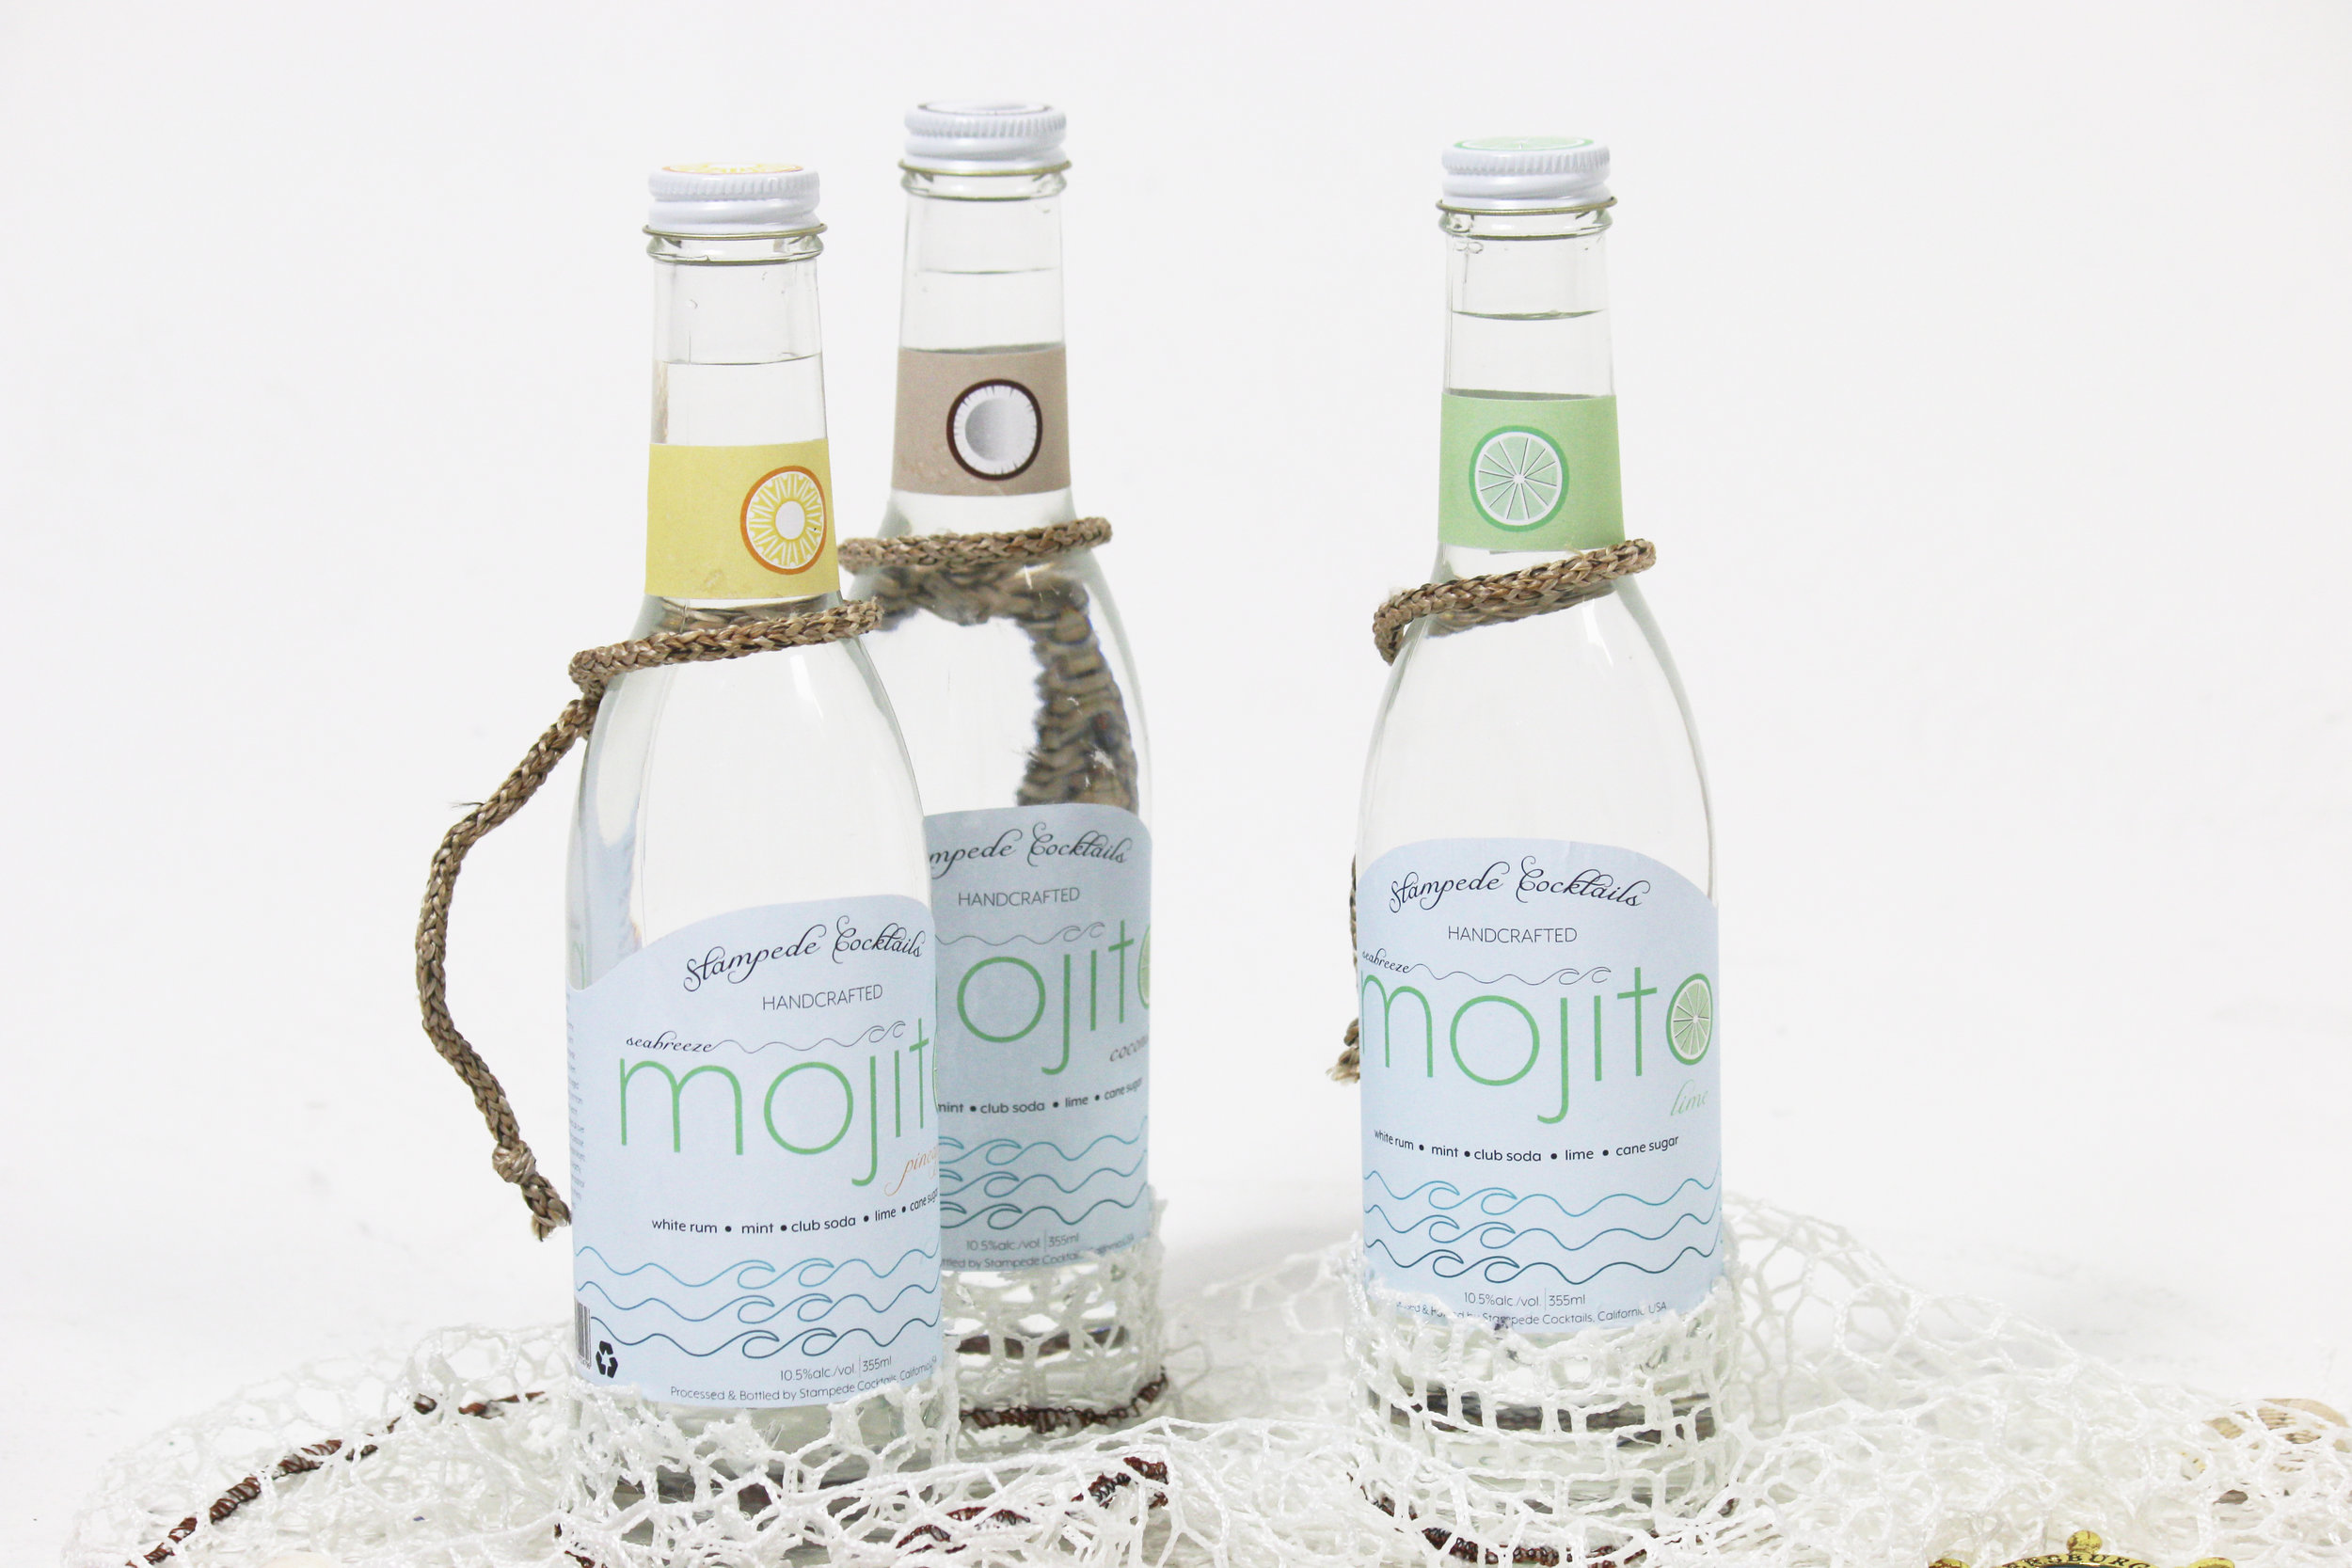 stampede cocktails - Goal of this project was to design a food packaging concept. Stampede Cocktails is a handcrafted drink for people looking to have a bubbly, lime mojito at the beach. The Seabreeze Mojito collection consists of the flavors; Pineapple, Lime, and Coconut. The fishnet attached to the bottom comes from the yacht Stampede, which has sailed all over the world.